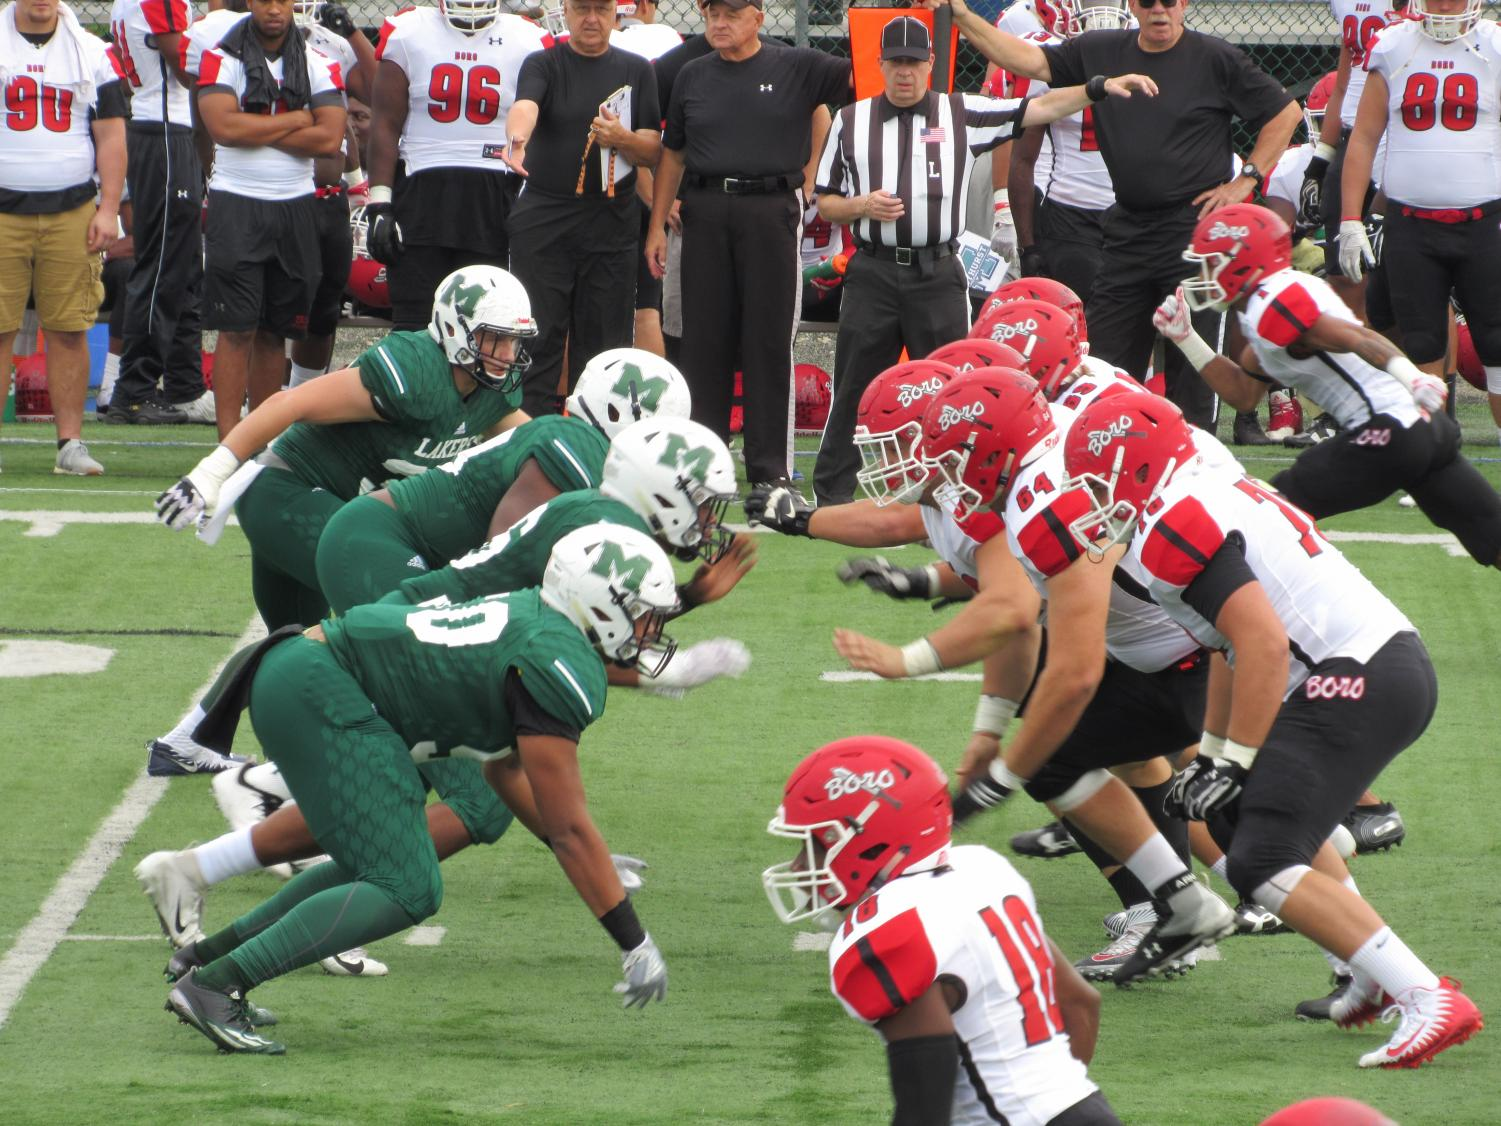 The Lakers' defense played an important role in Saturday's 24-6 victory over Edinboro University.  Laker defense accounted for four turnovers — three interceptions and a fumble.